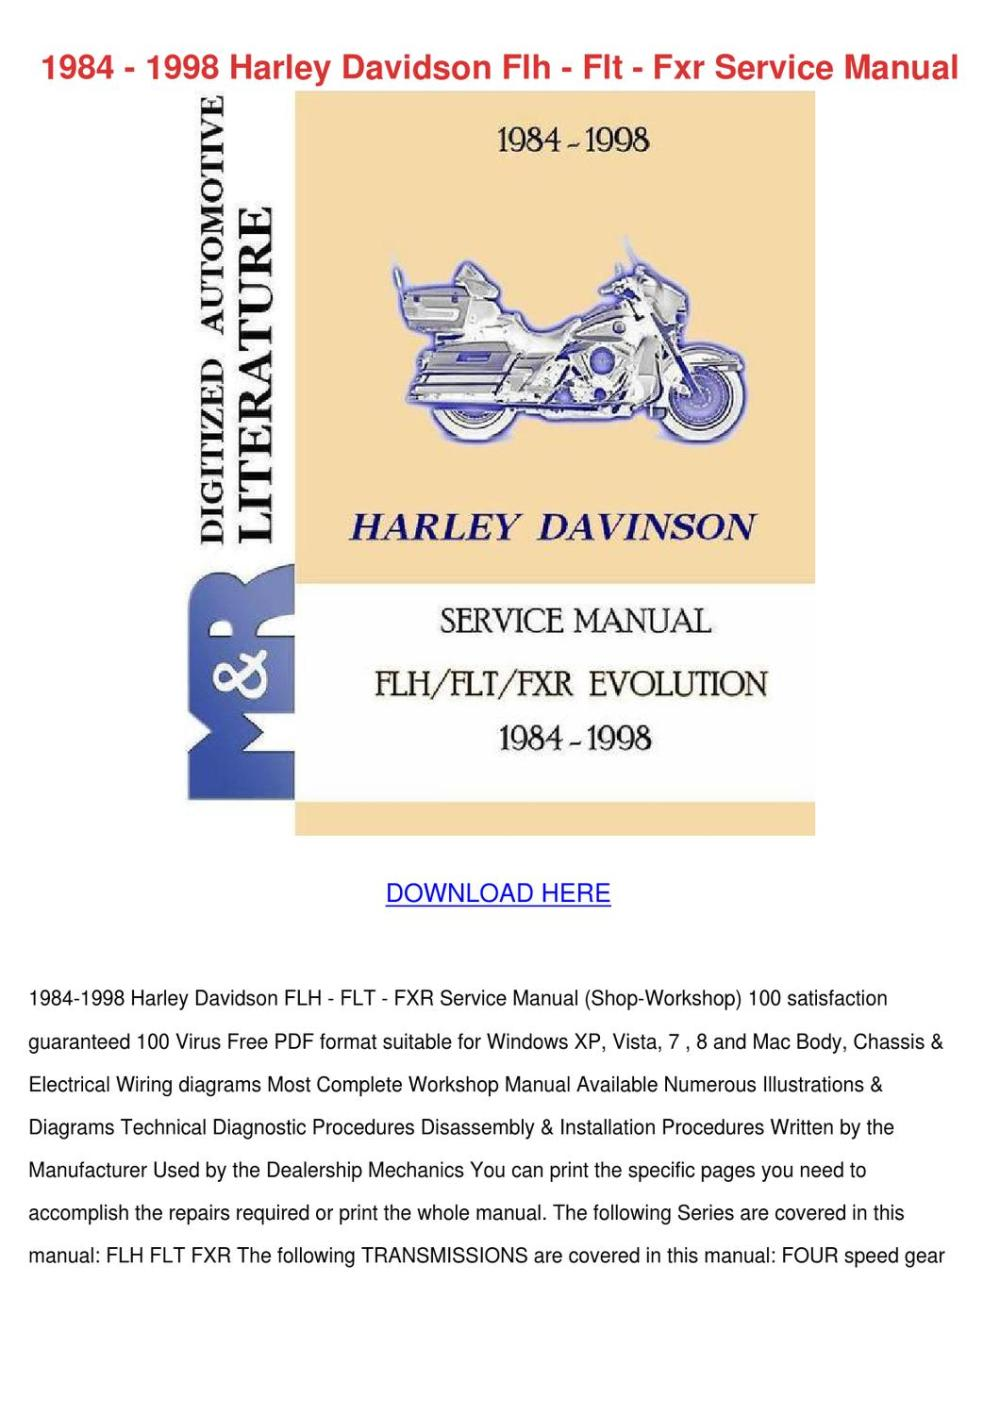 medium resolution of 1984 1998 harley davidson flh flt fxr service